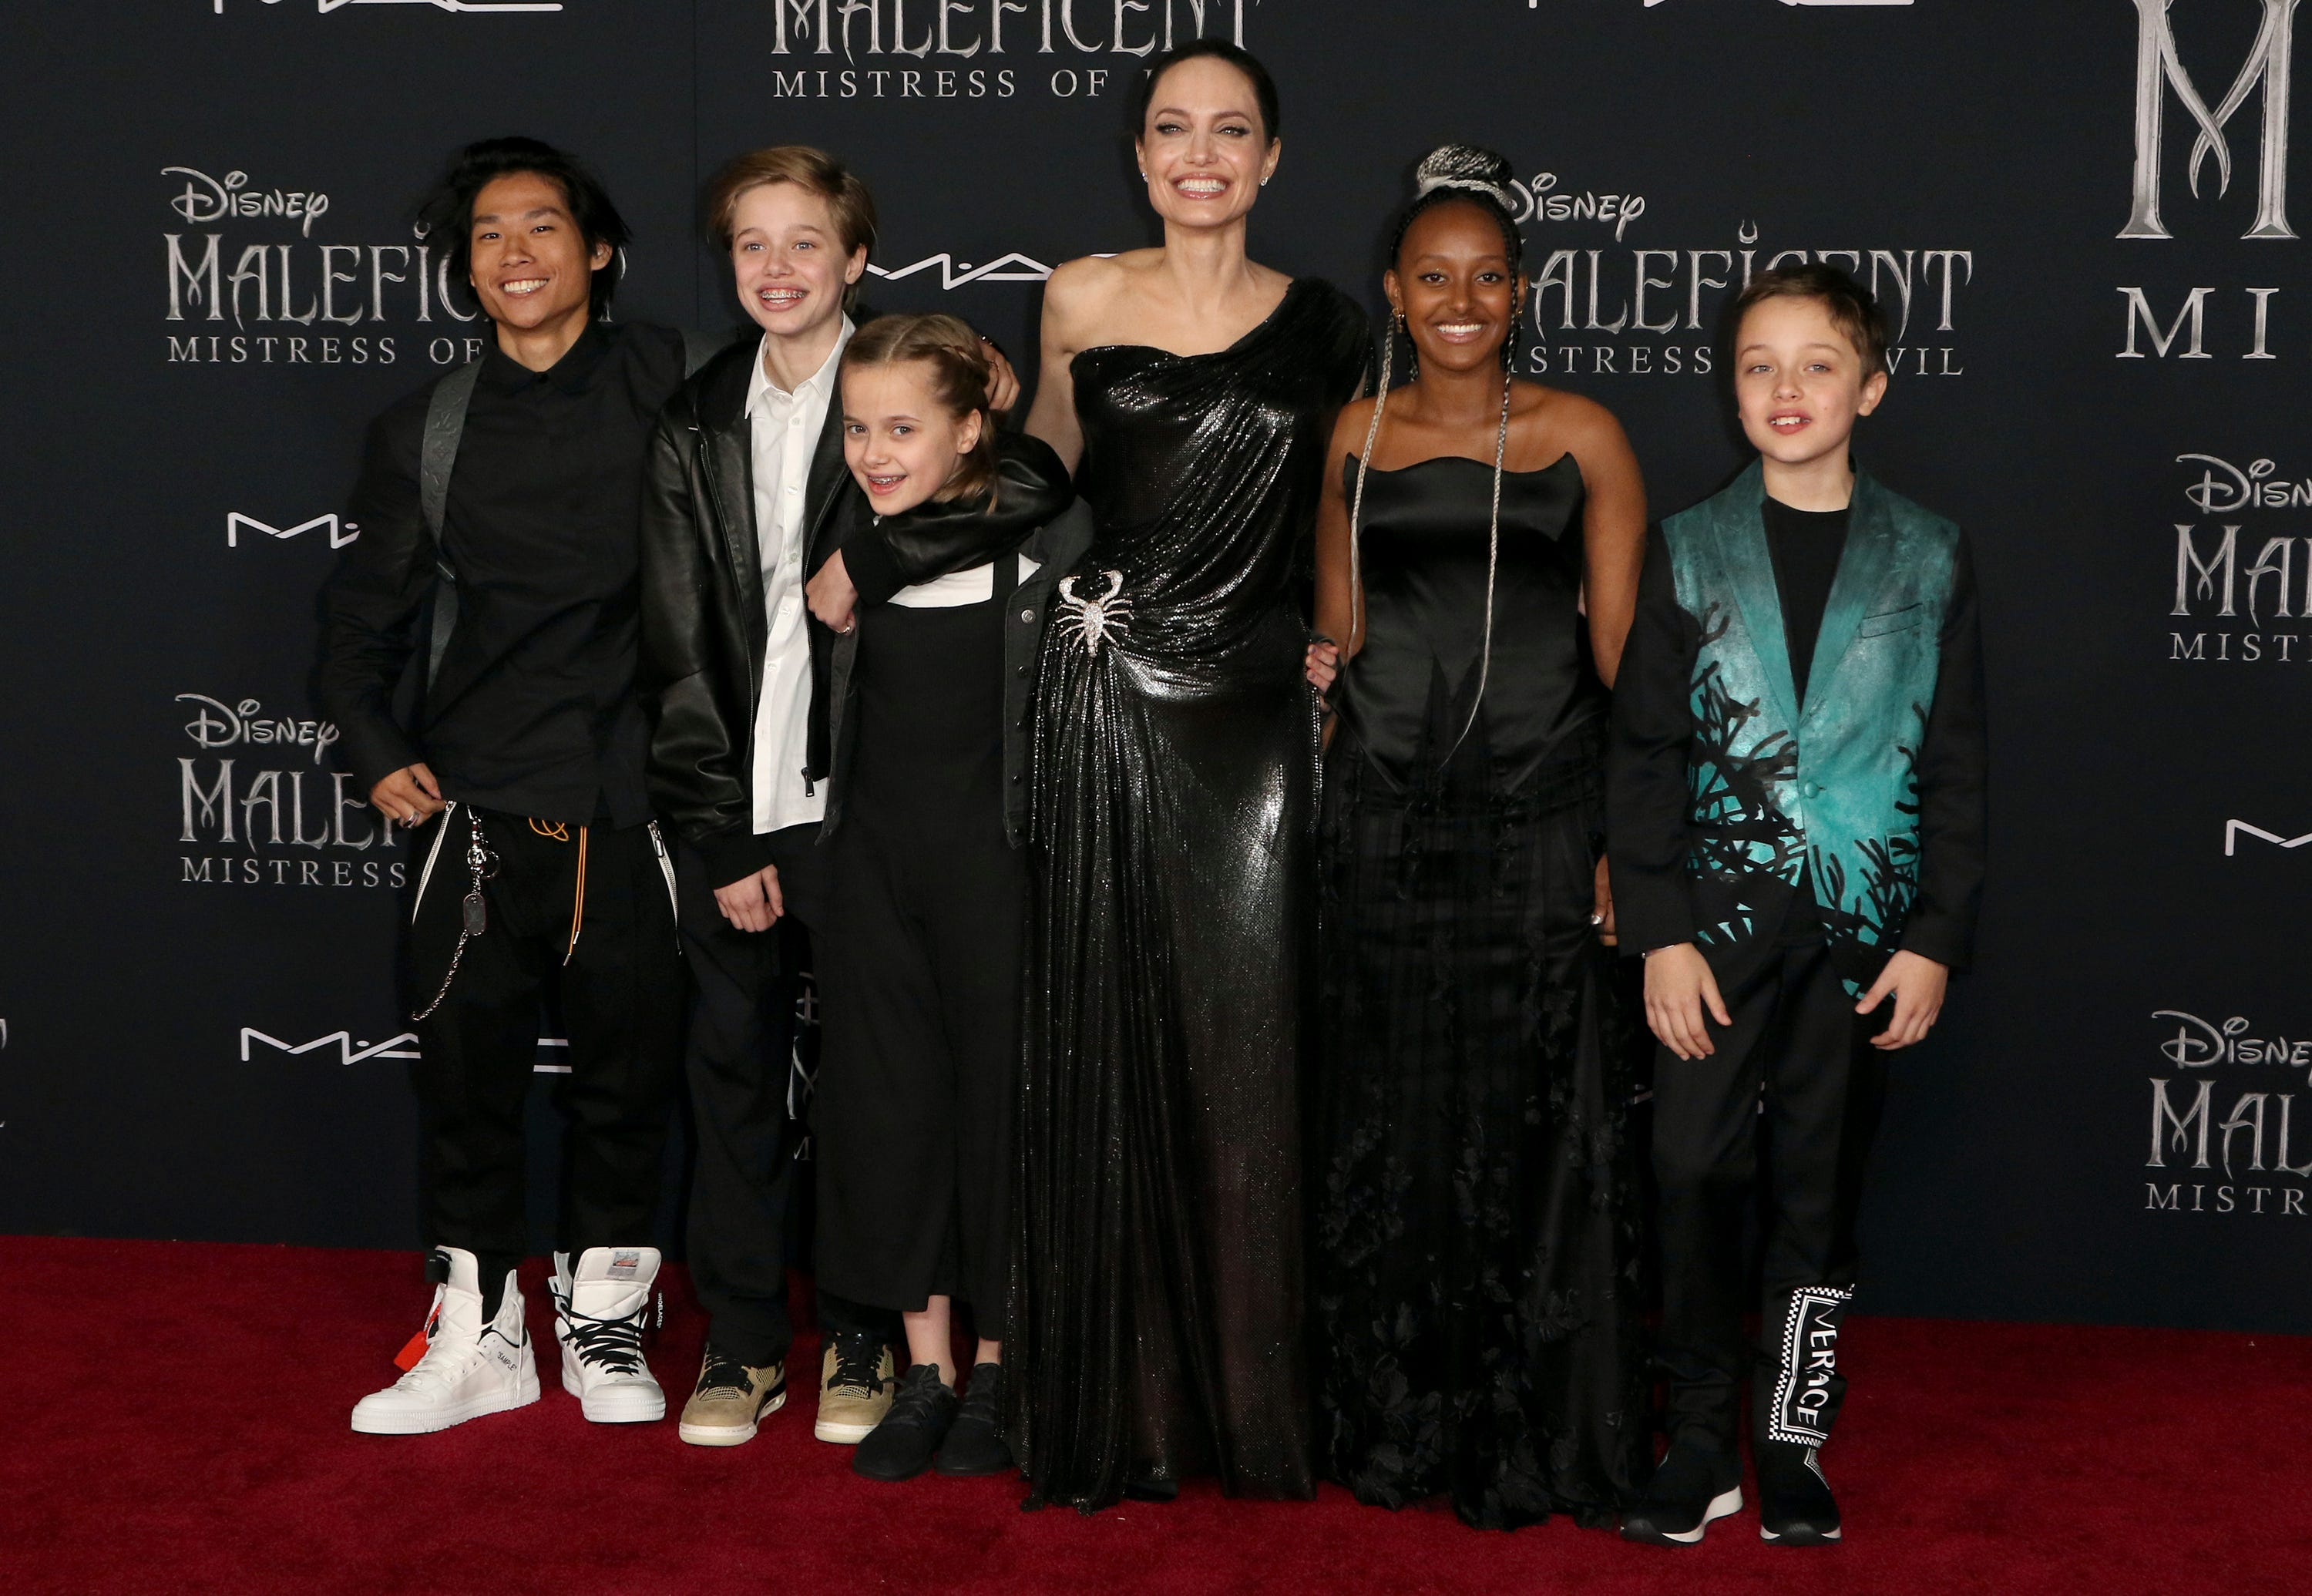 'Maleficent: Girlfriend of Evil': Angelina Jolie, Elle Fanning bring magic to the red carpet